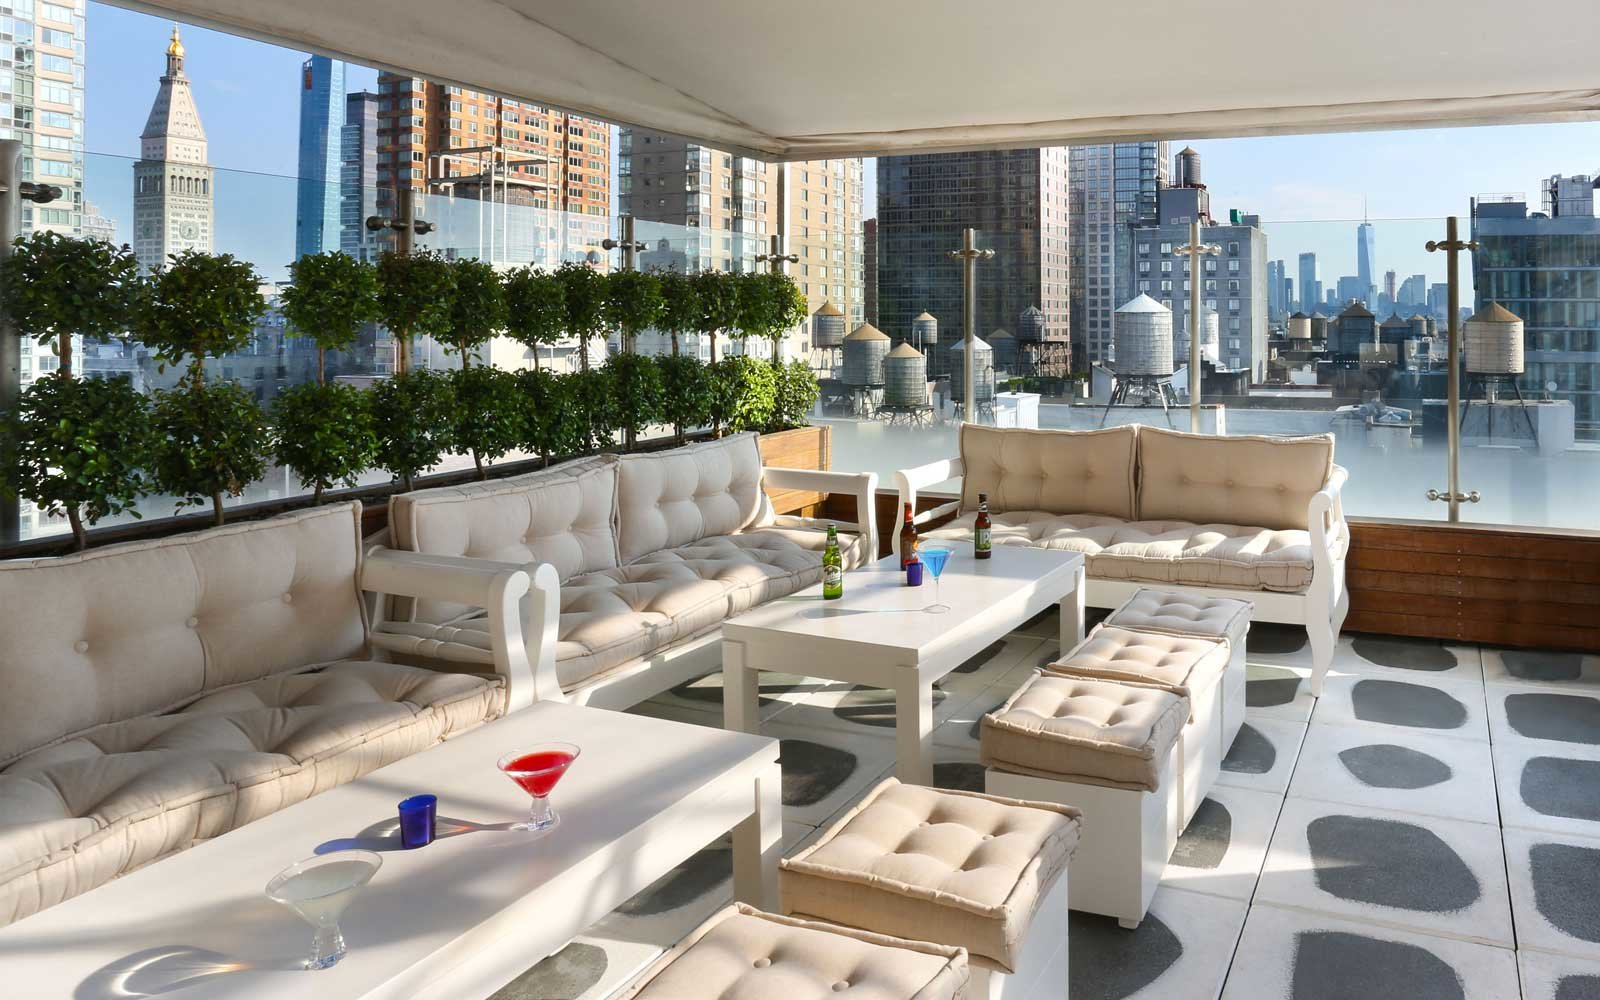 Hotel Hayden, New York City rooftop lounge